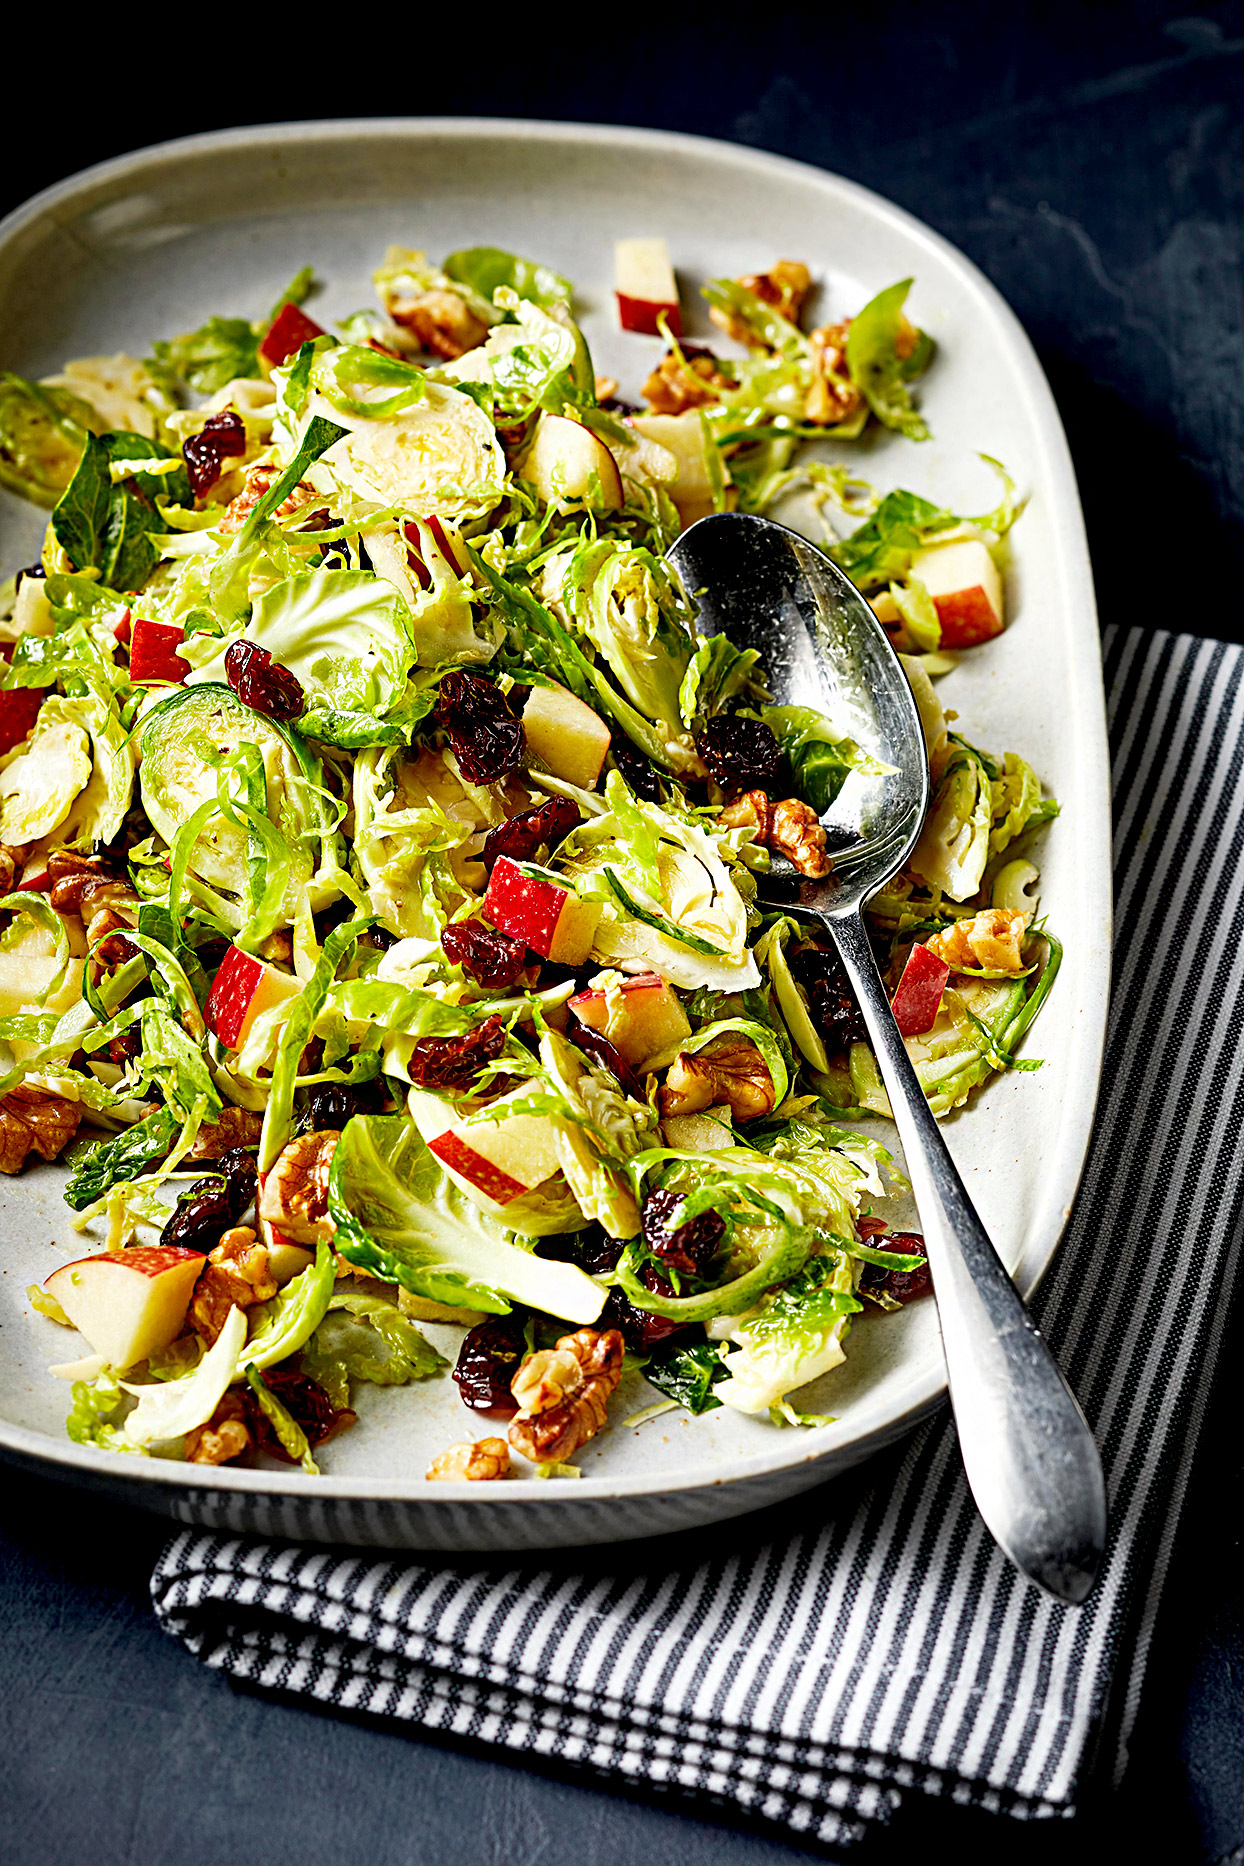 Cherry apple slaw with green brussels sprouts